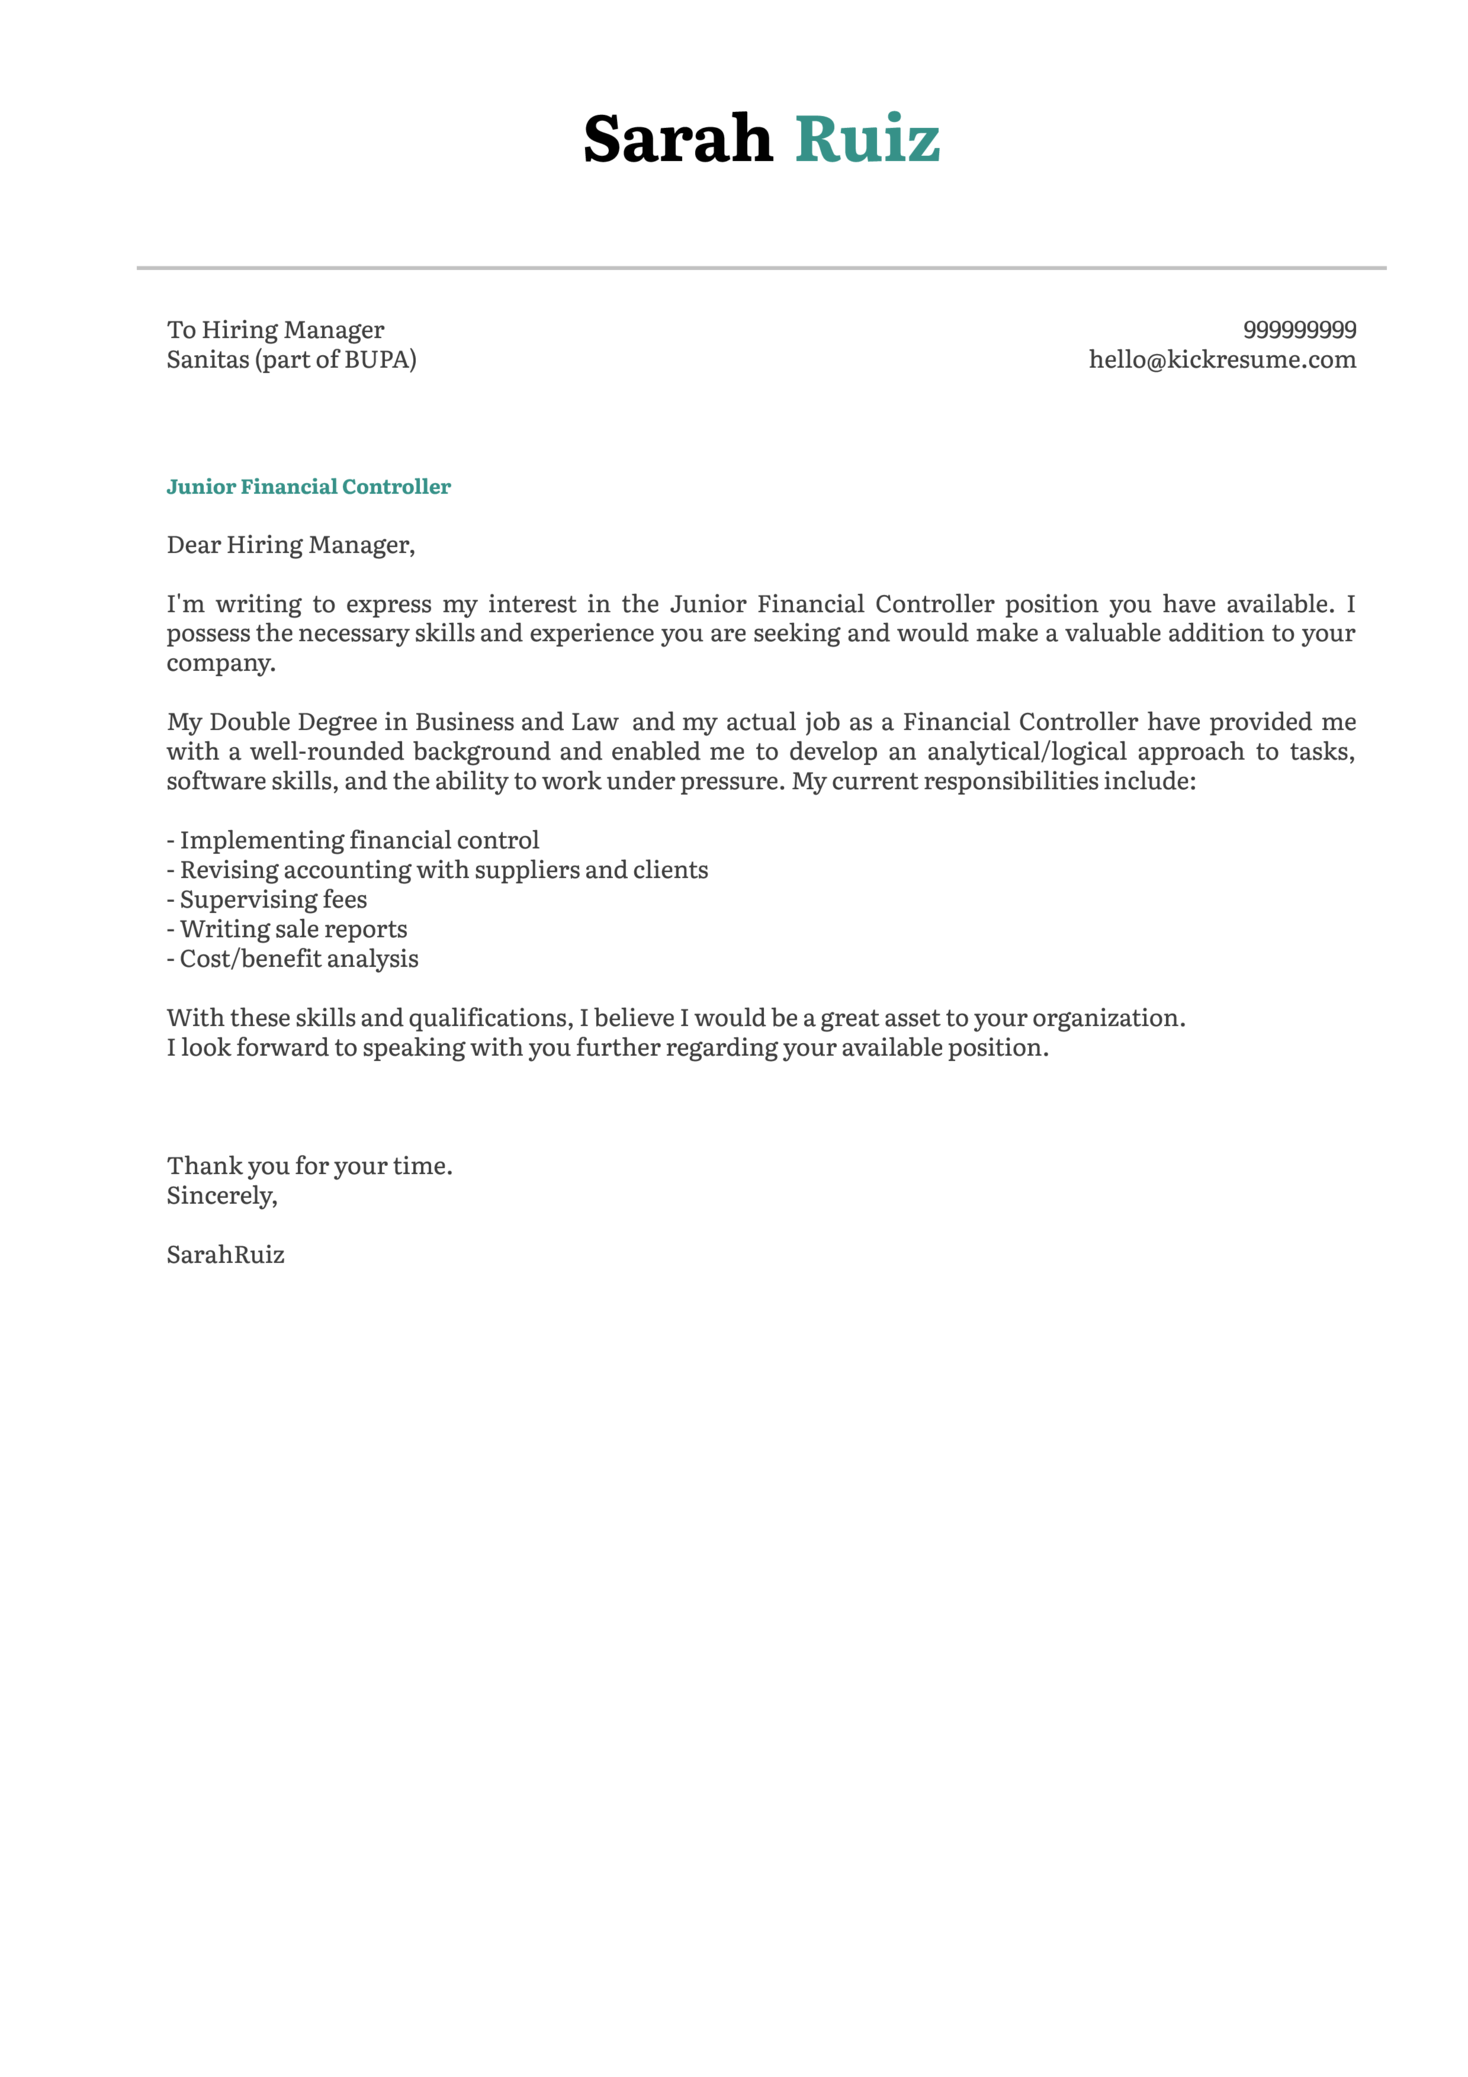 Marvelous Junior Financial Controller Cover Letter Sample At Bupa